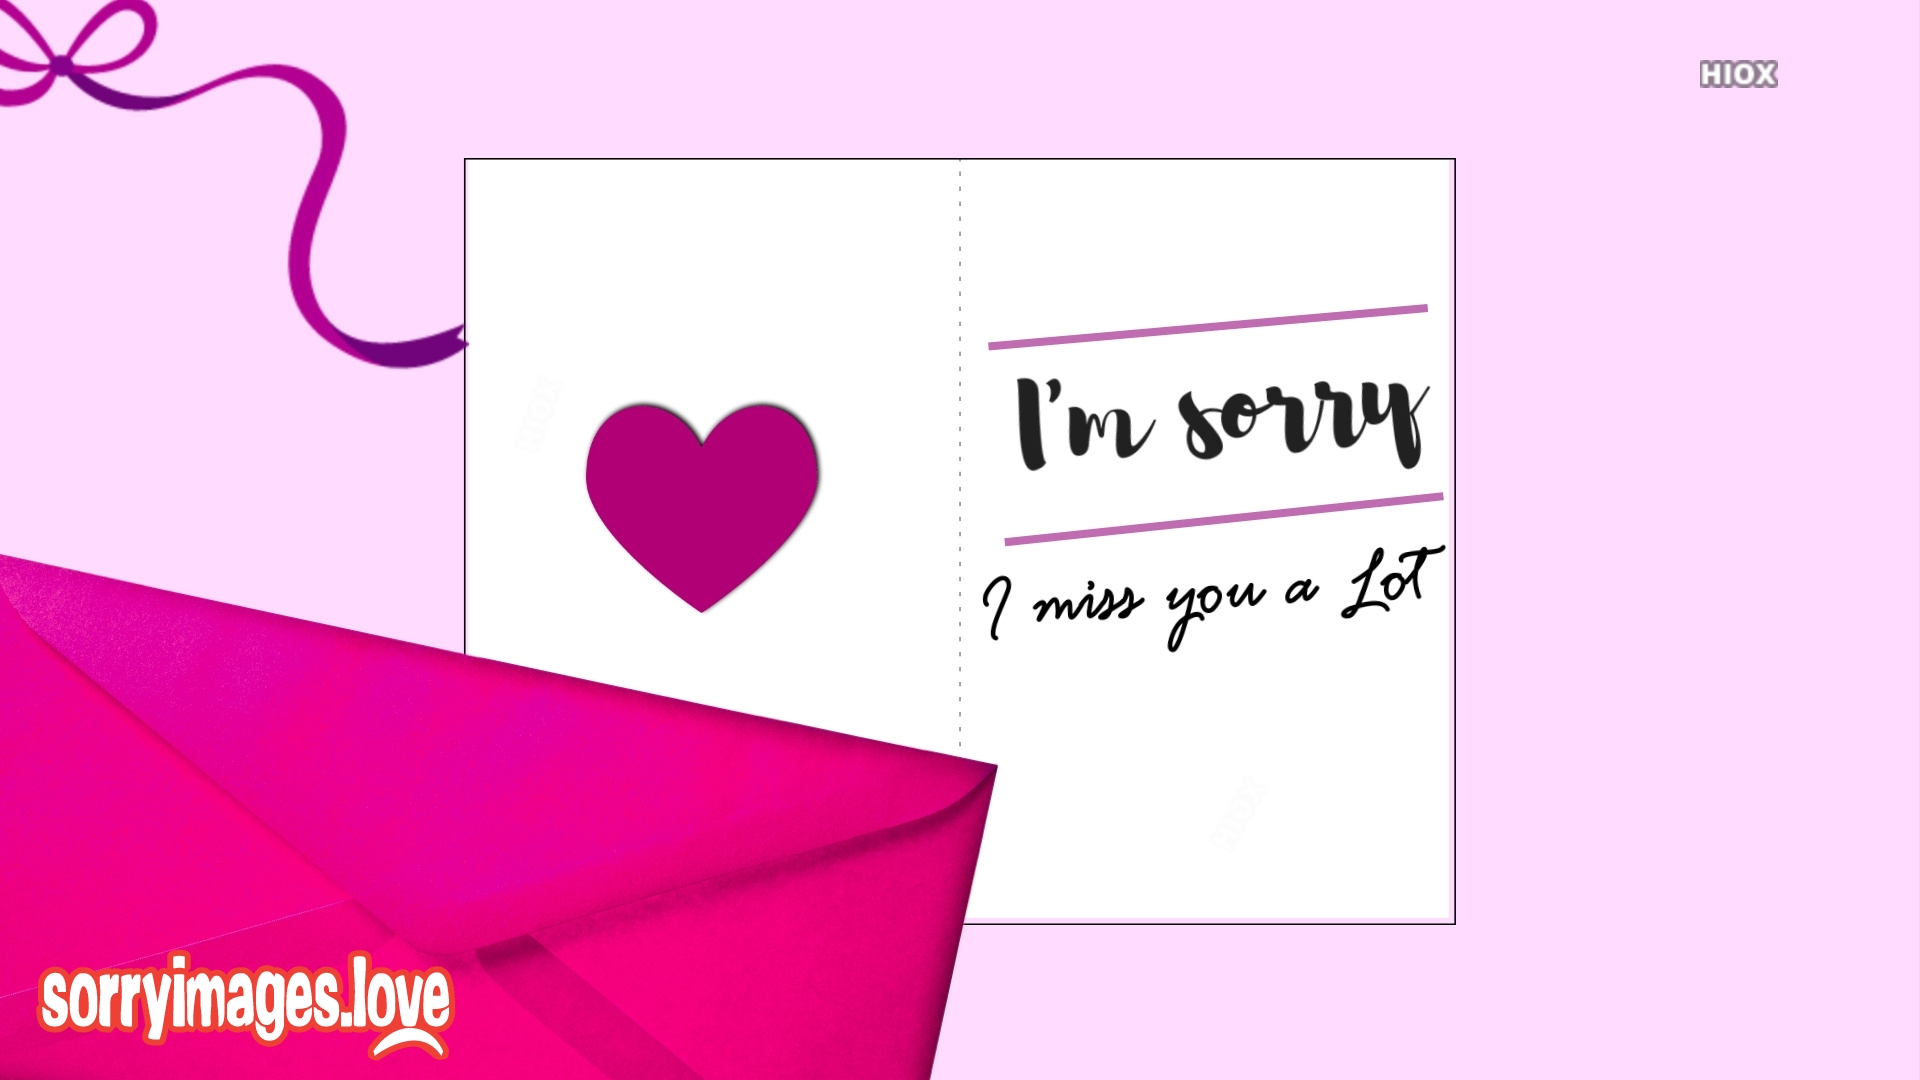 Sorry and Miss You Image To Boyfriend